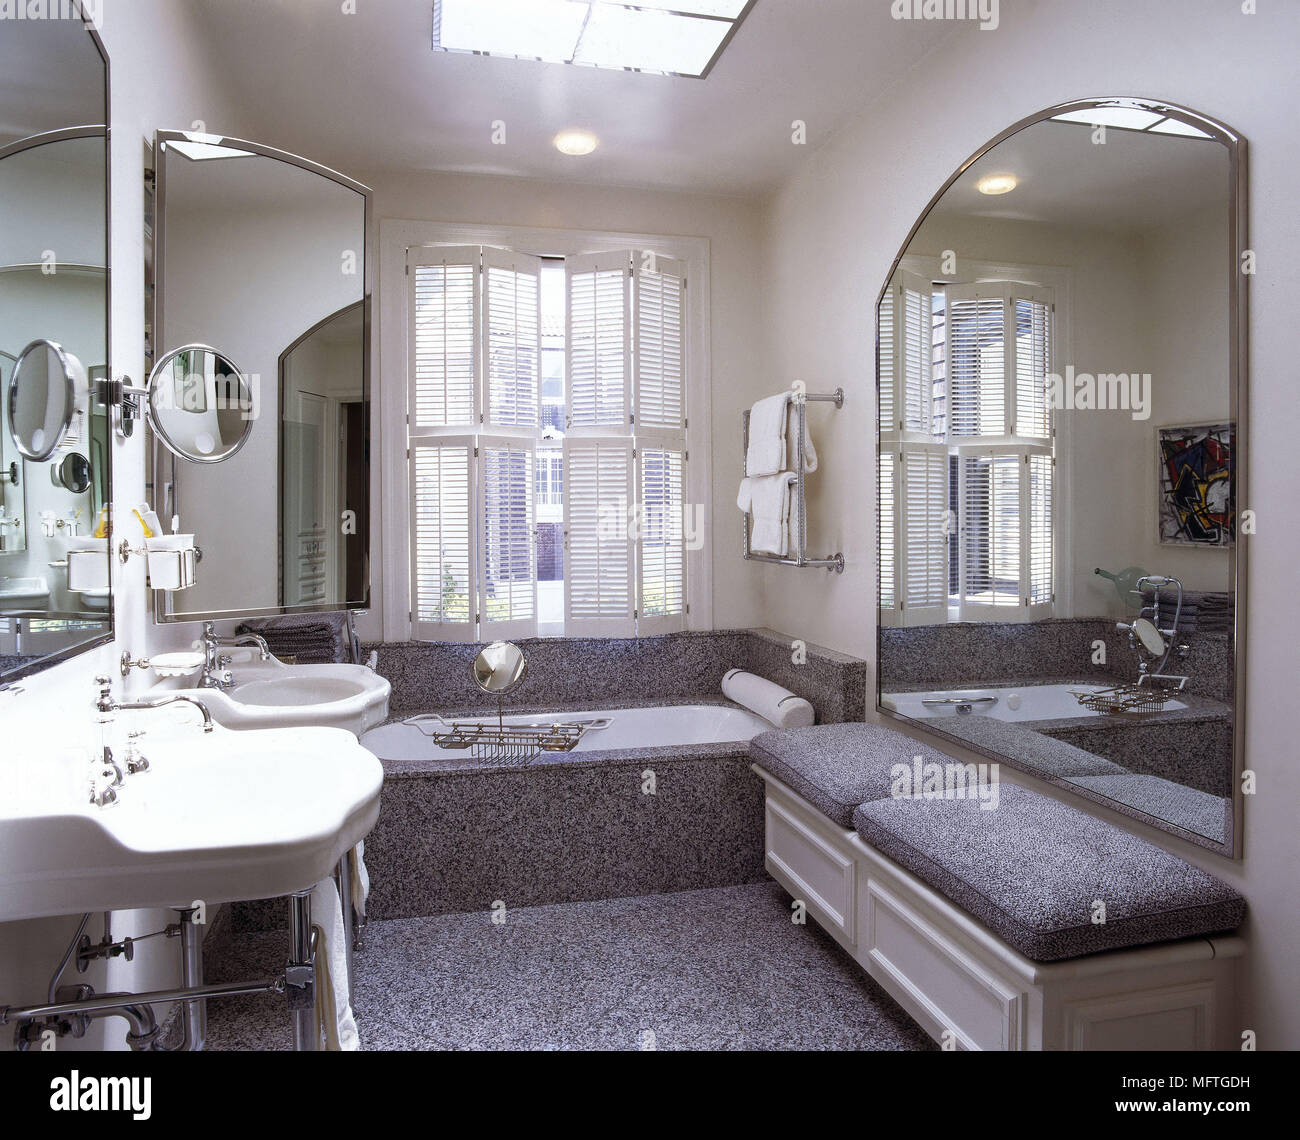 Terrific Traditional Style Bathroom With Twin Victorian Style Bralicious Painted Fabric Chair Ideas Braliciousco